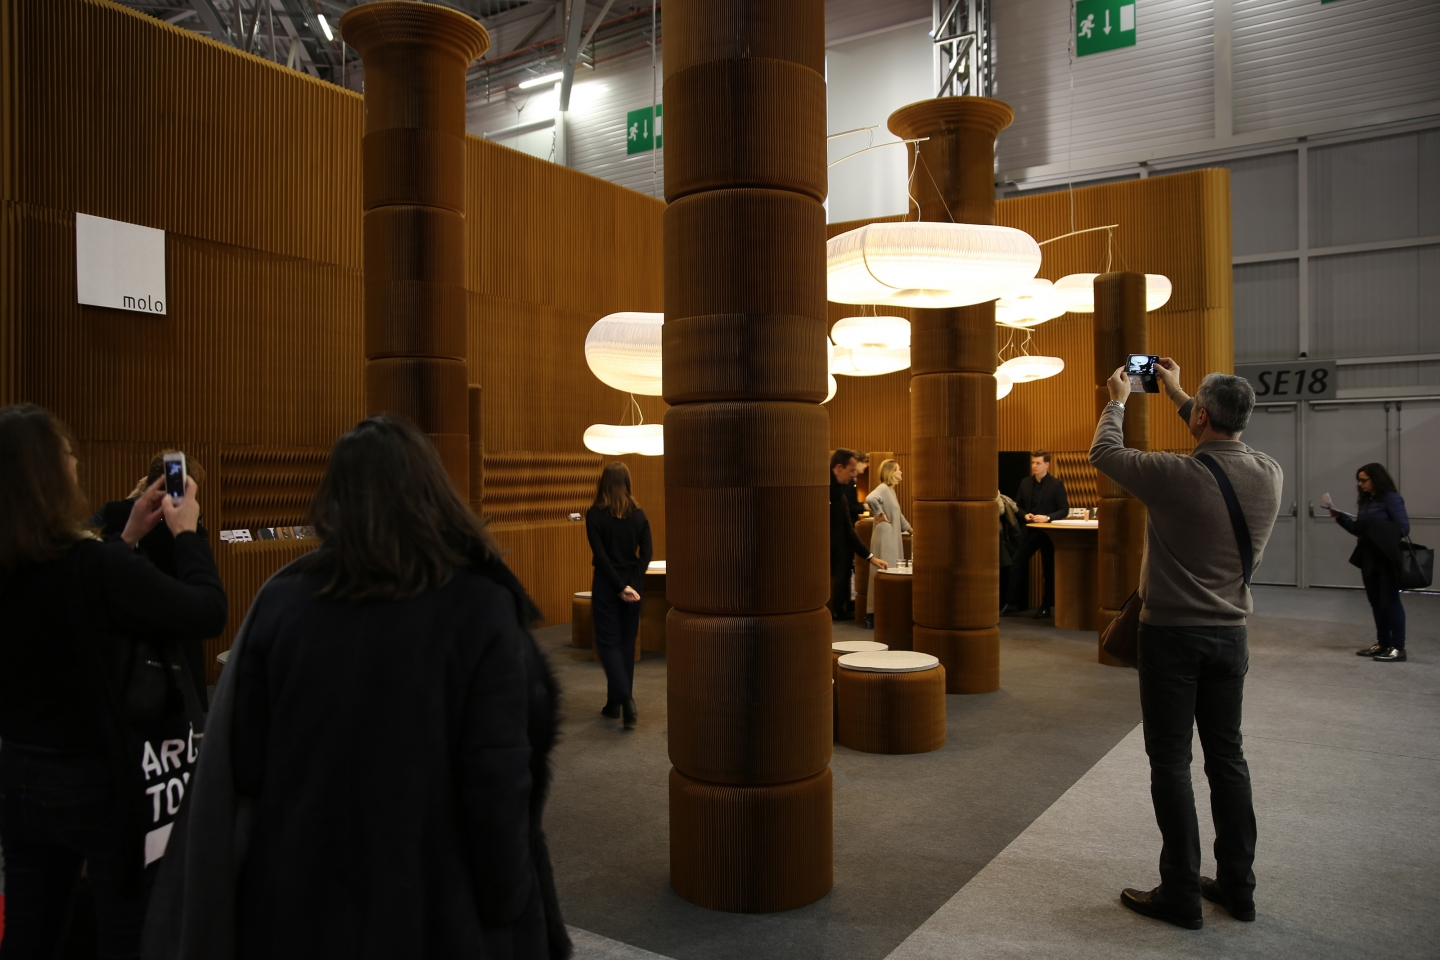 modular paper furniture by molo - molo's installation at Maison & Objet featured a forest of columns made from softseating fanning stools, 2016